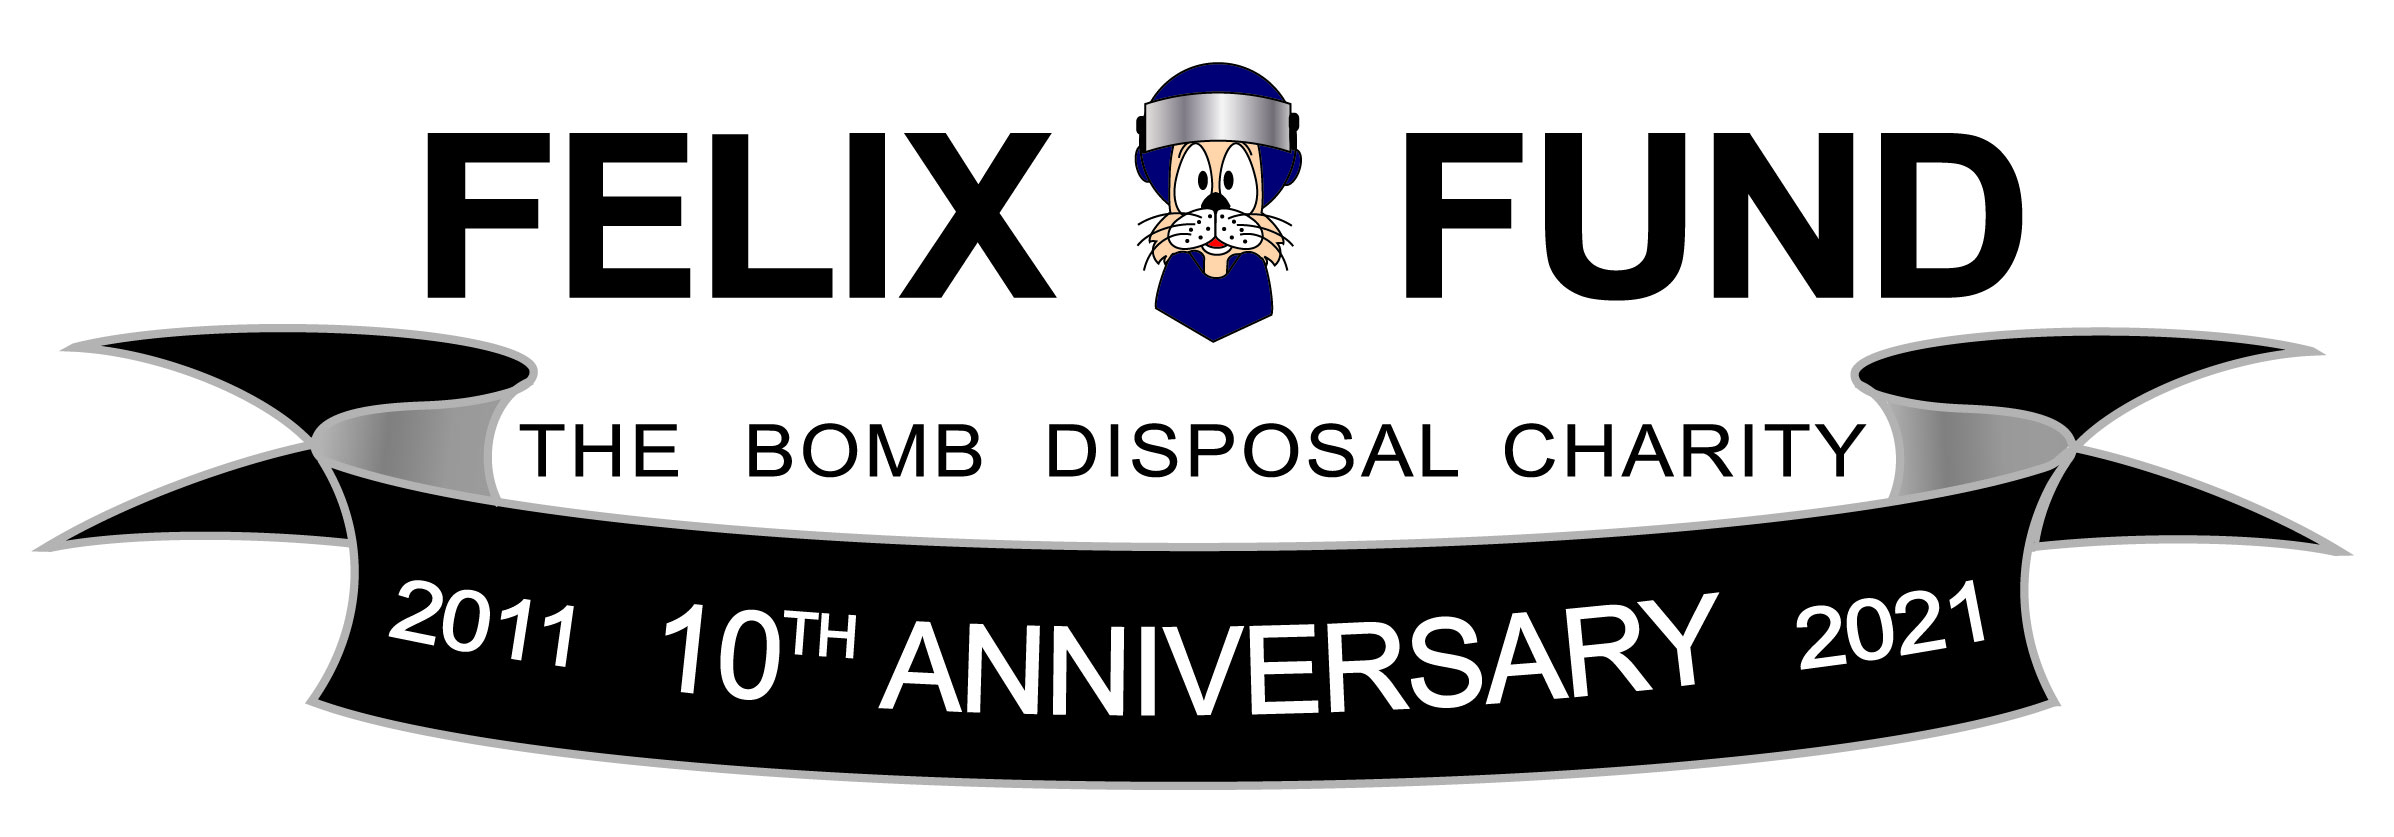 Felix Fund 10th Anniversary logo